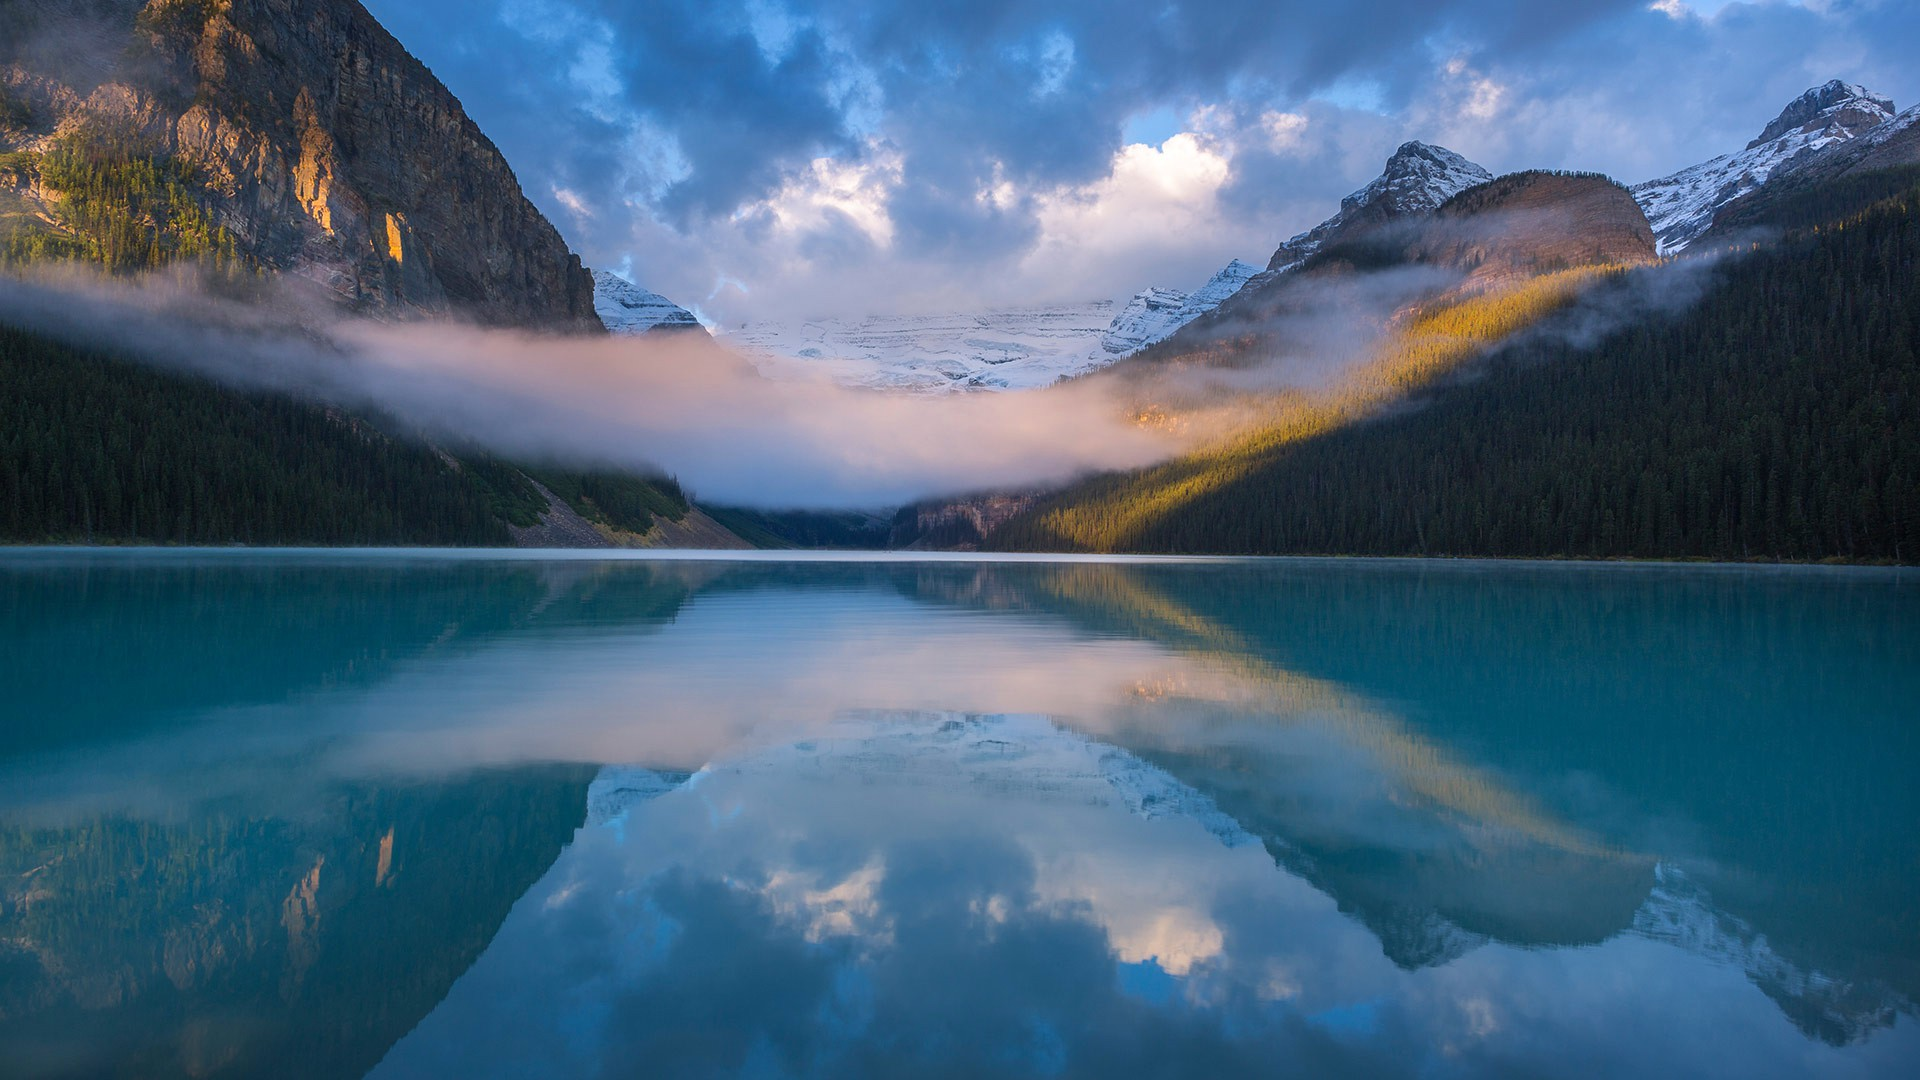 Bing 3d Wallpapers Banff National Park Canada Wallpaper Nature And